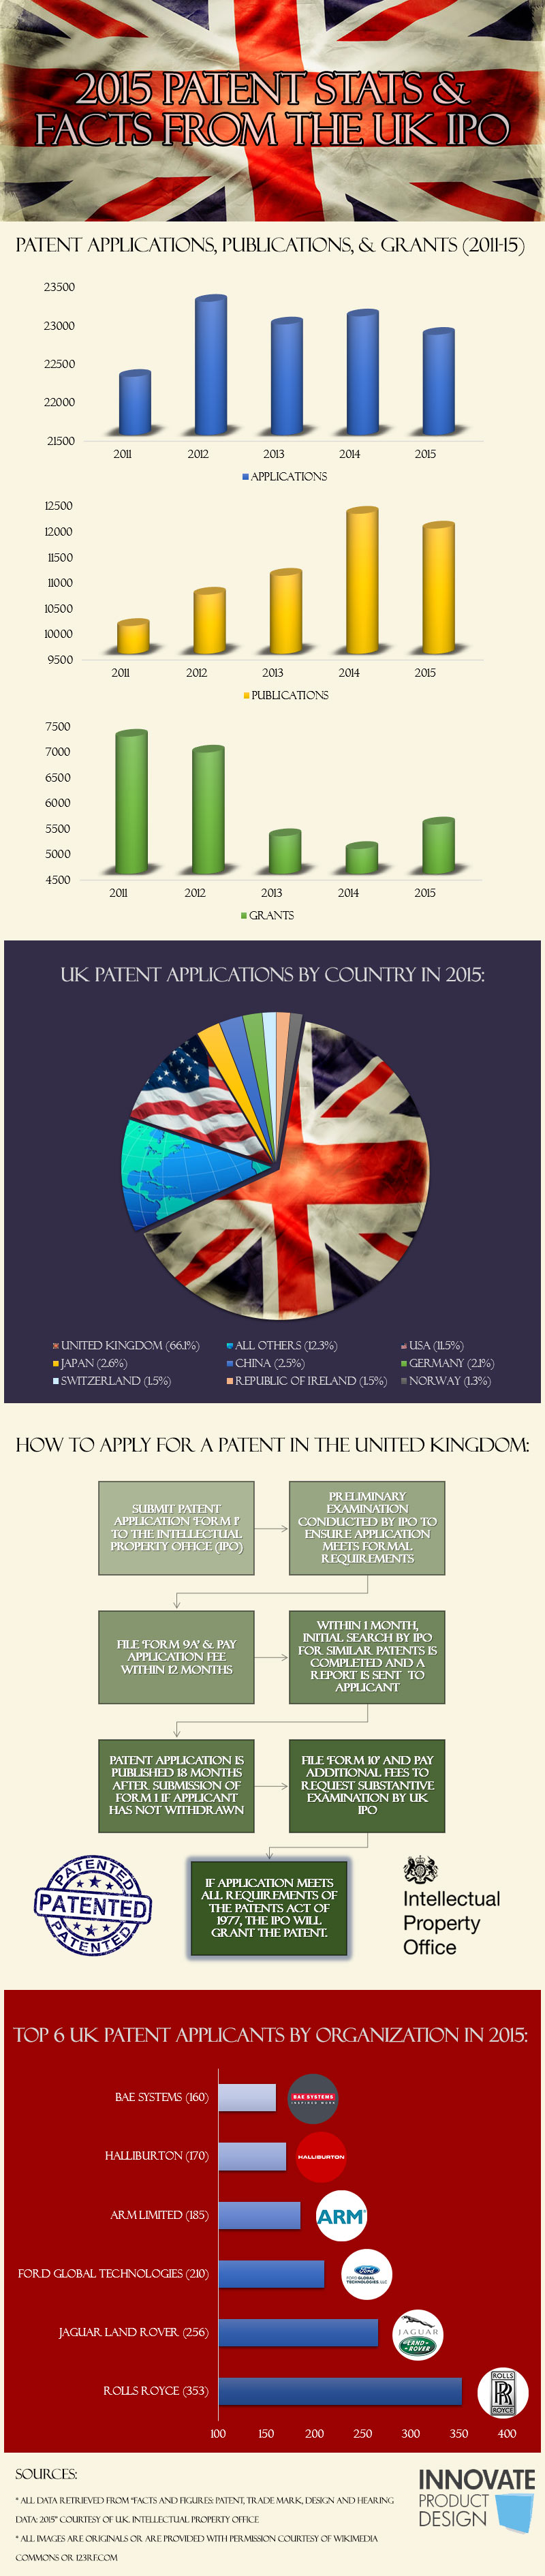 2015 UK IPO Patent Stats Infographic